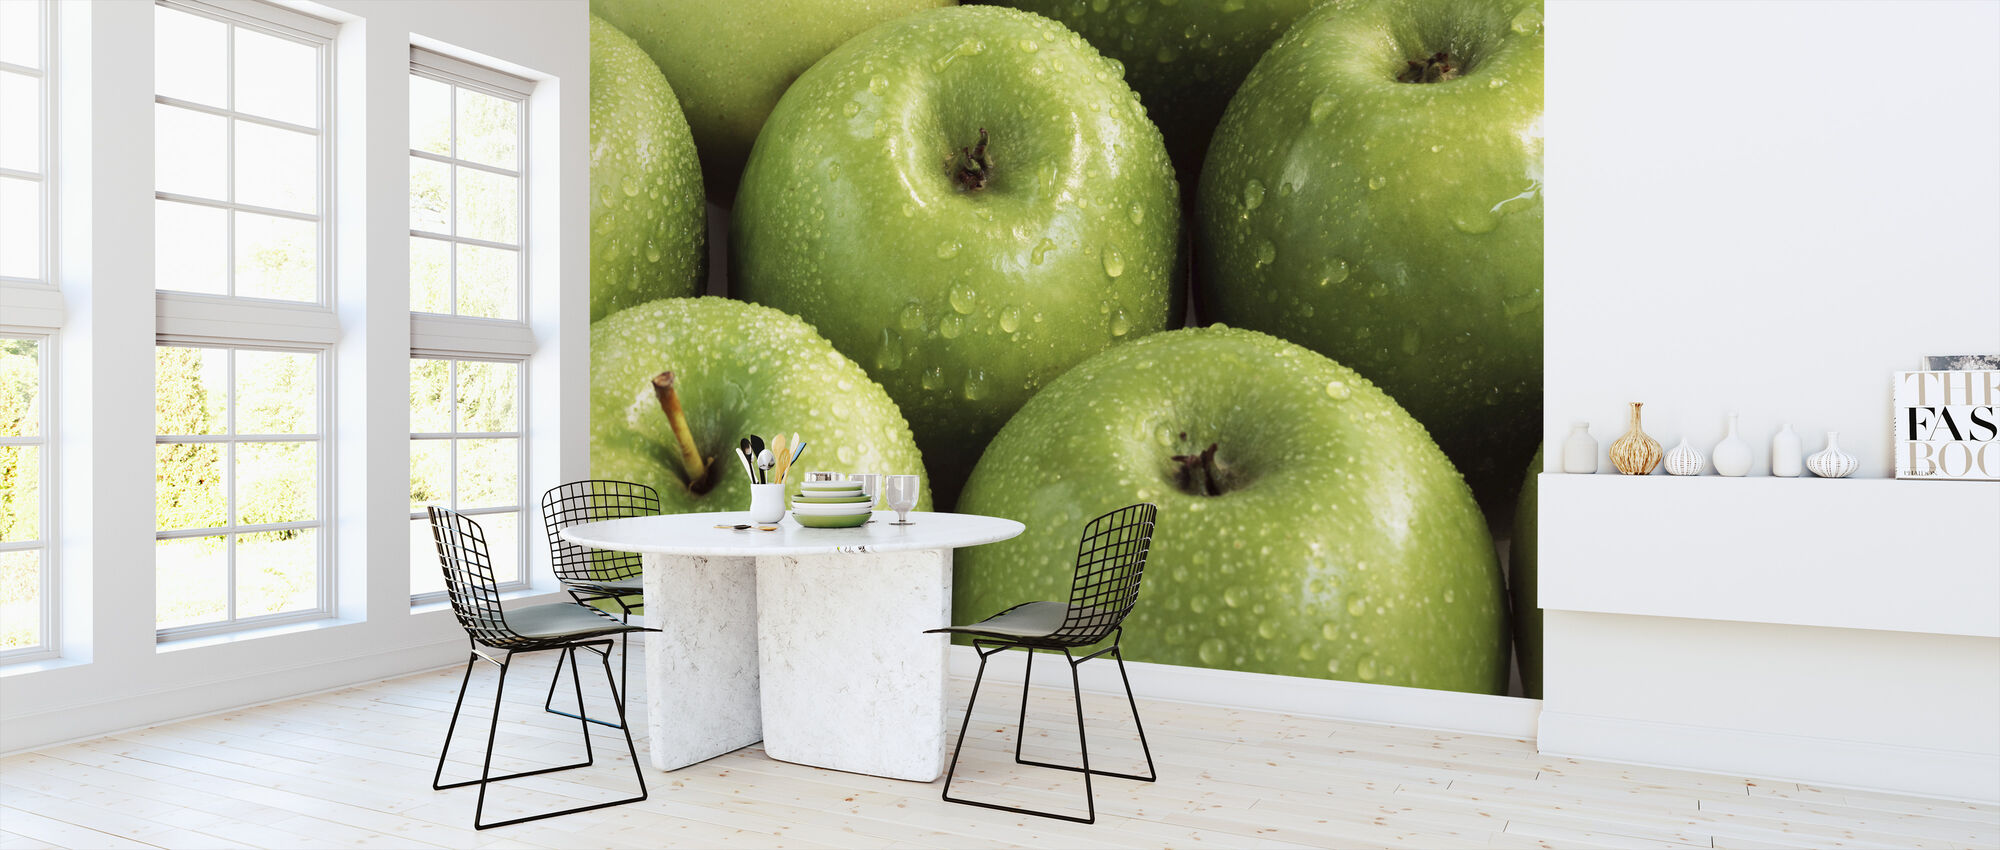 Apples - Wallpaper - Kitchen